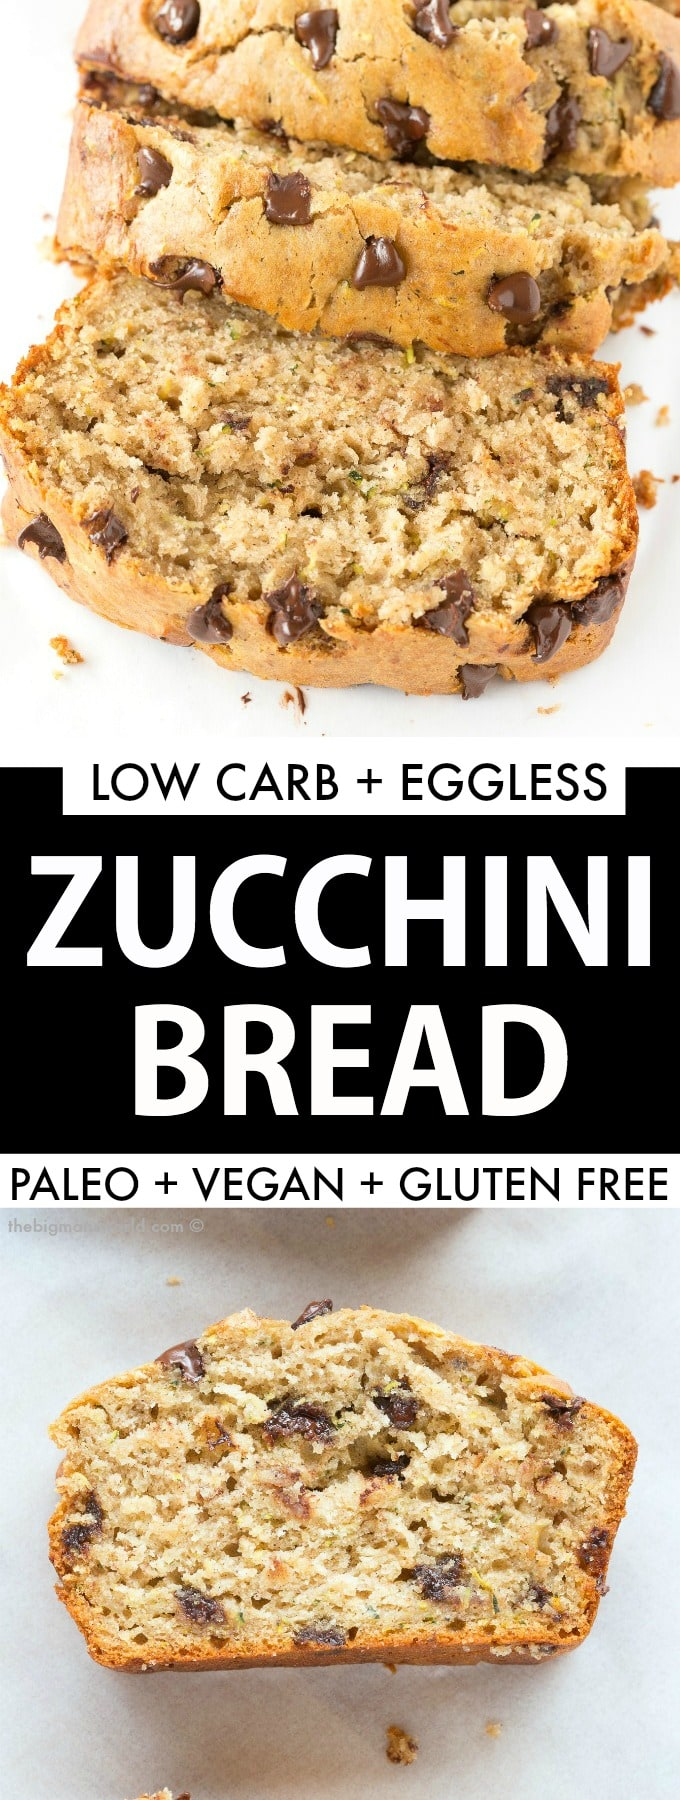 Easy gluten free, vegan and paleo healthy chocolate chip zucchini bread with bananas! Moist, tender and SO easy!